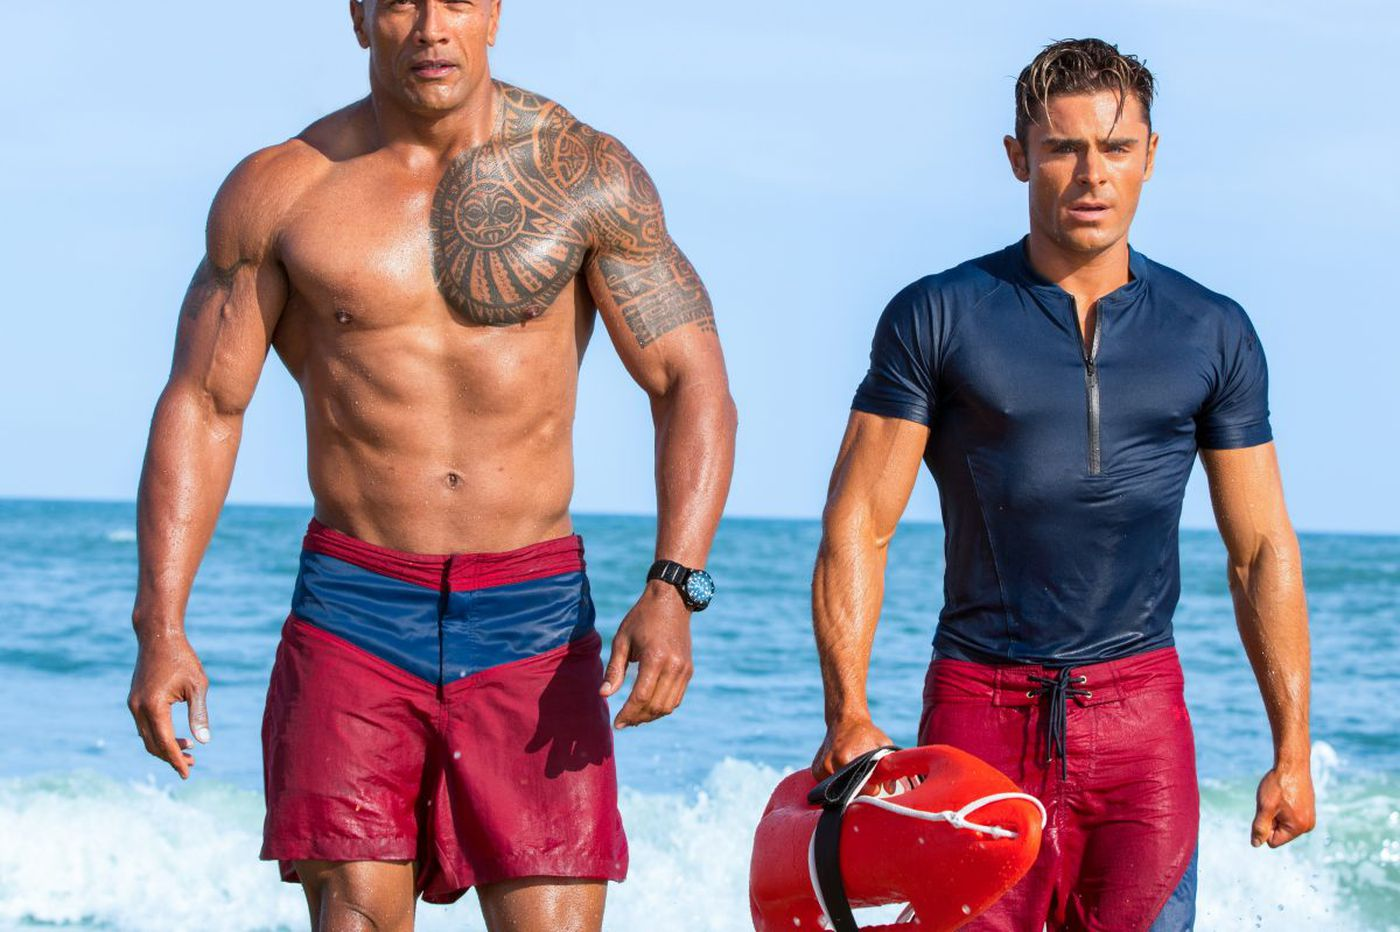 Zac Efron between The Rock and a hard place in 'Baywatch'